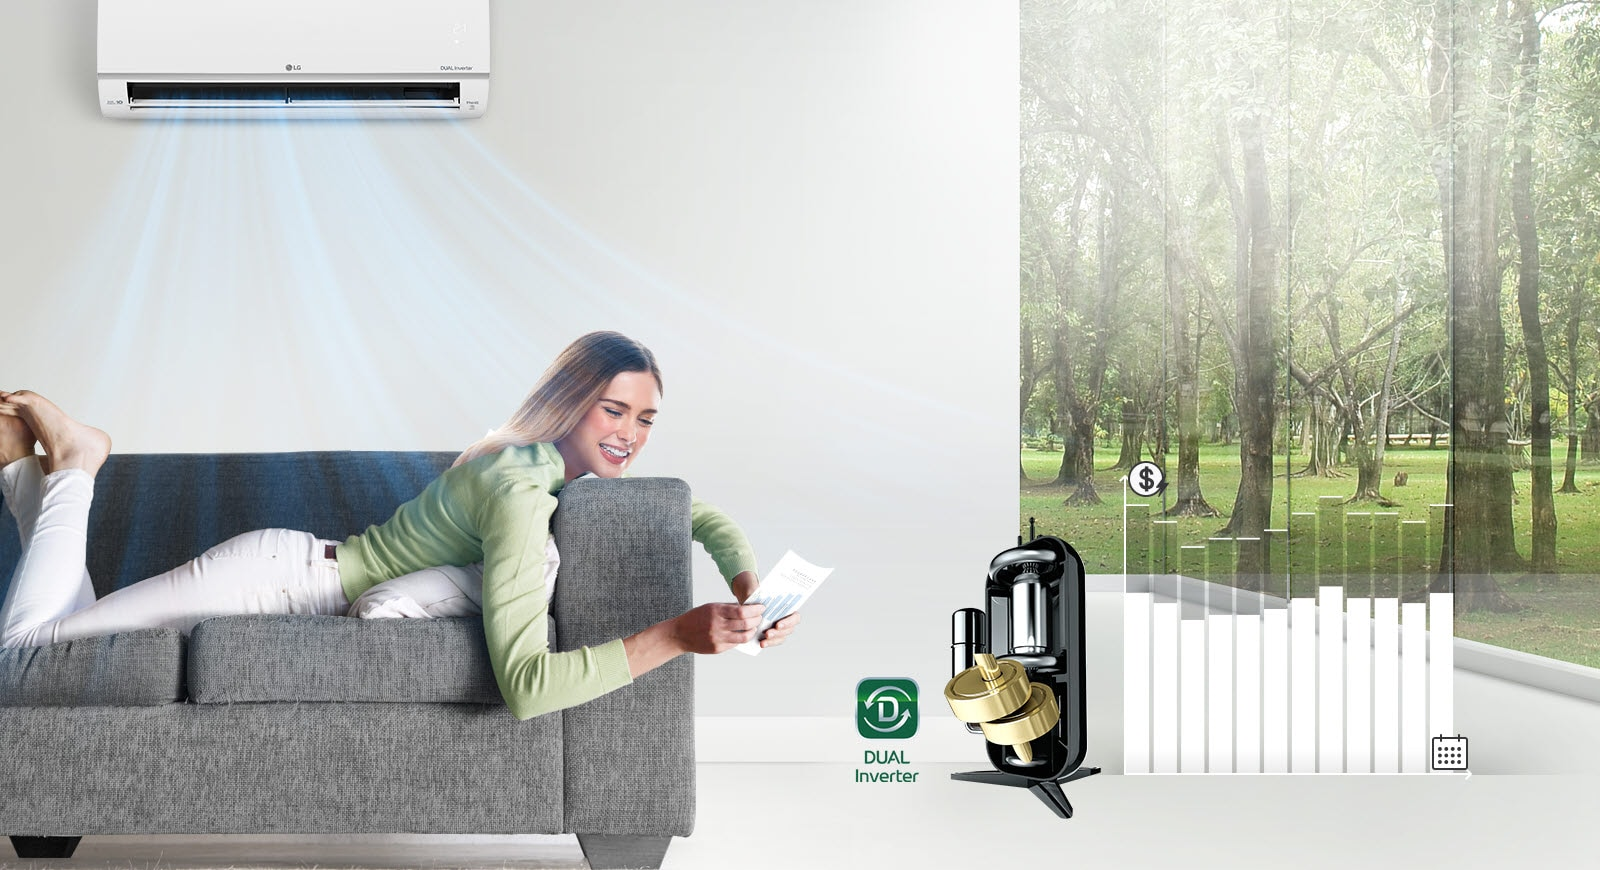 A woman lounges on a sofa smiling as the air conditioner blows air above her. To the right of the woman is the Dual Inverter logo and an image of the Dual Dual Inverter. Further to the right is a bar graph. The bars go up indicating more money spent and then go down to show that the dual inverter saves customers money.